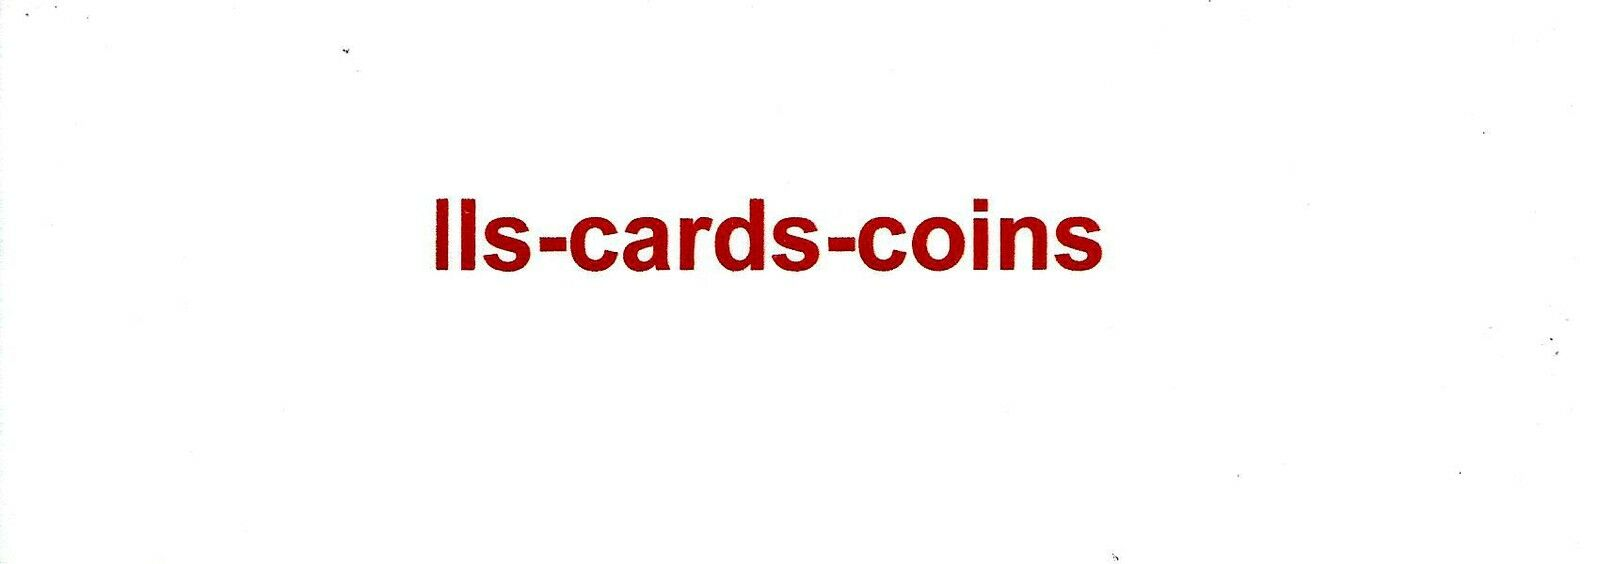 lls-cards-coins